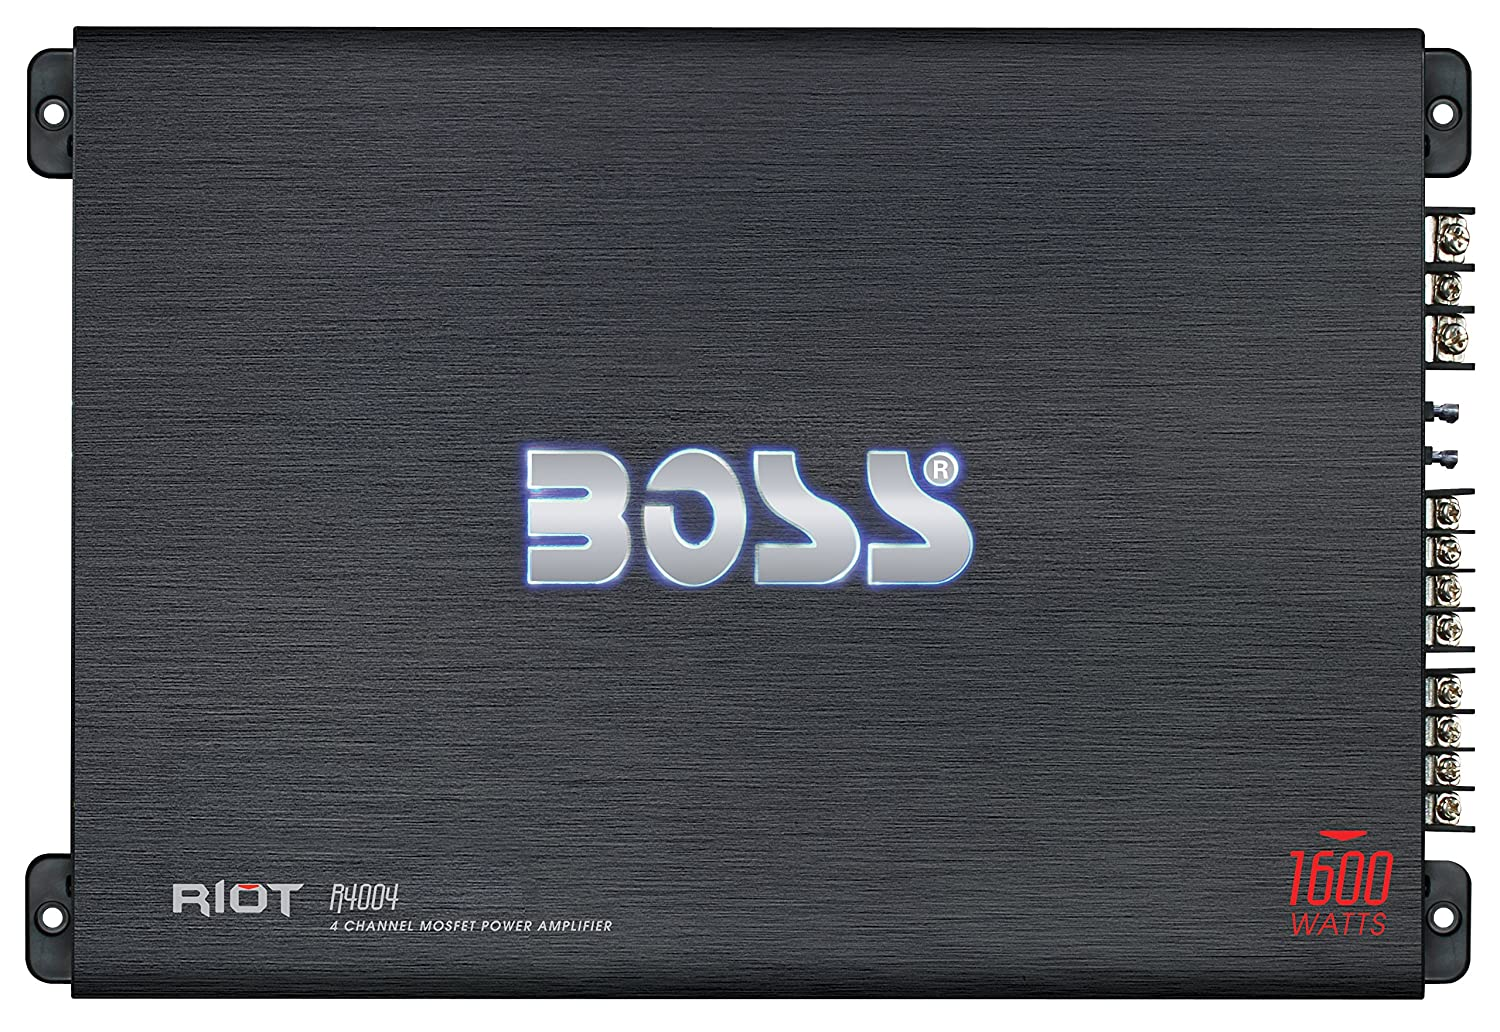 Boss Audio R4004 Riot 1600 Watt 4 Channel 2 Ohm 2220 Bose Amplifier Wiring Diagram Stable Class A B Full Range Bridgeable Mosfet Car With Remote Subwoofer